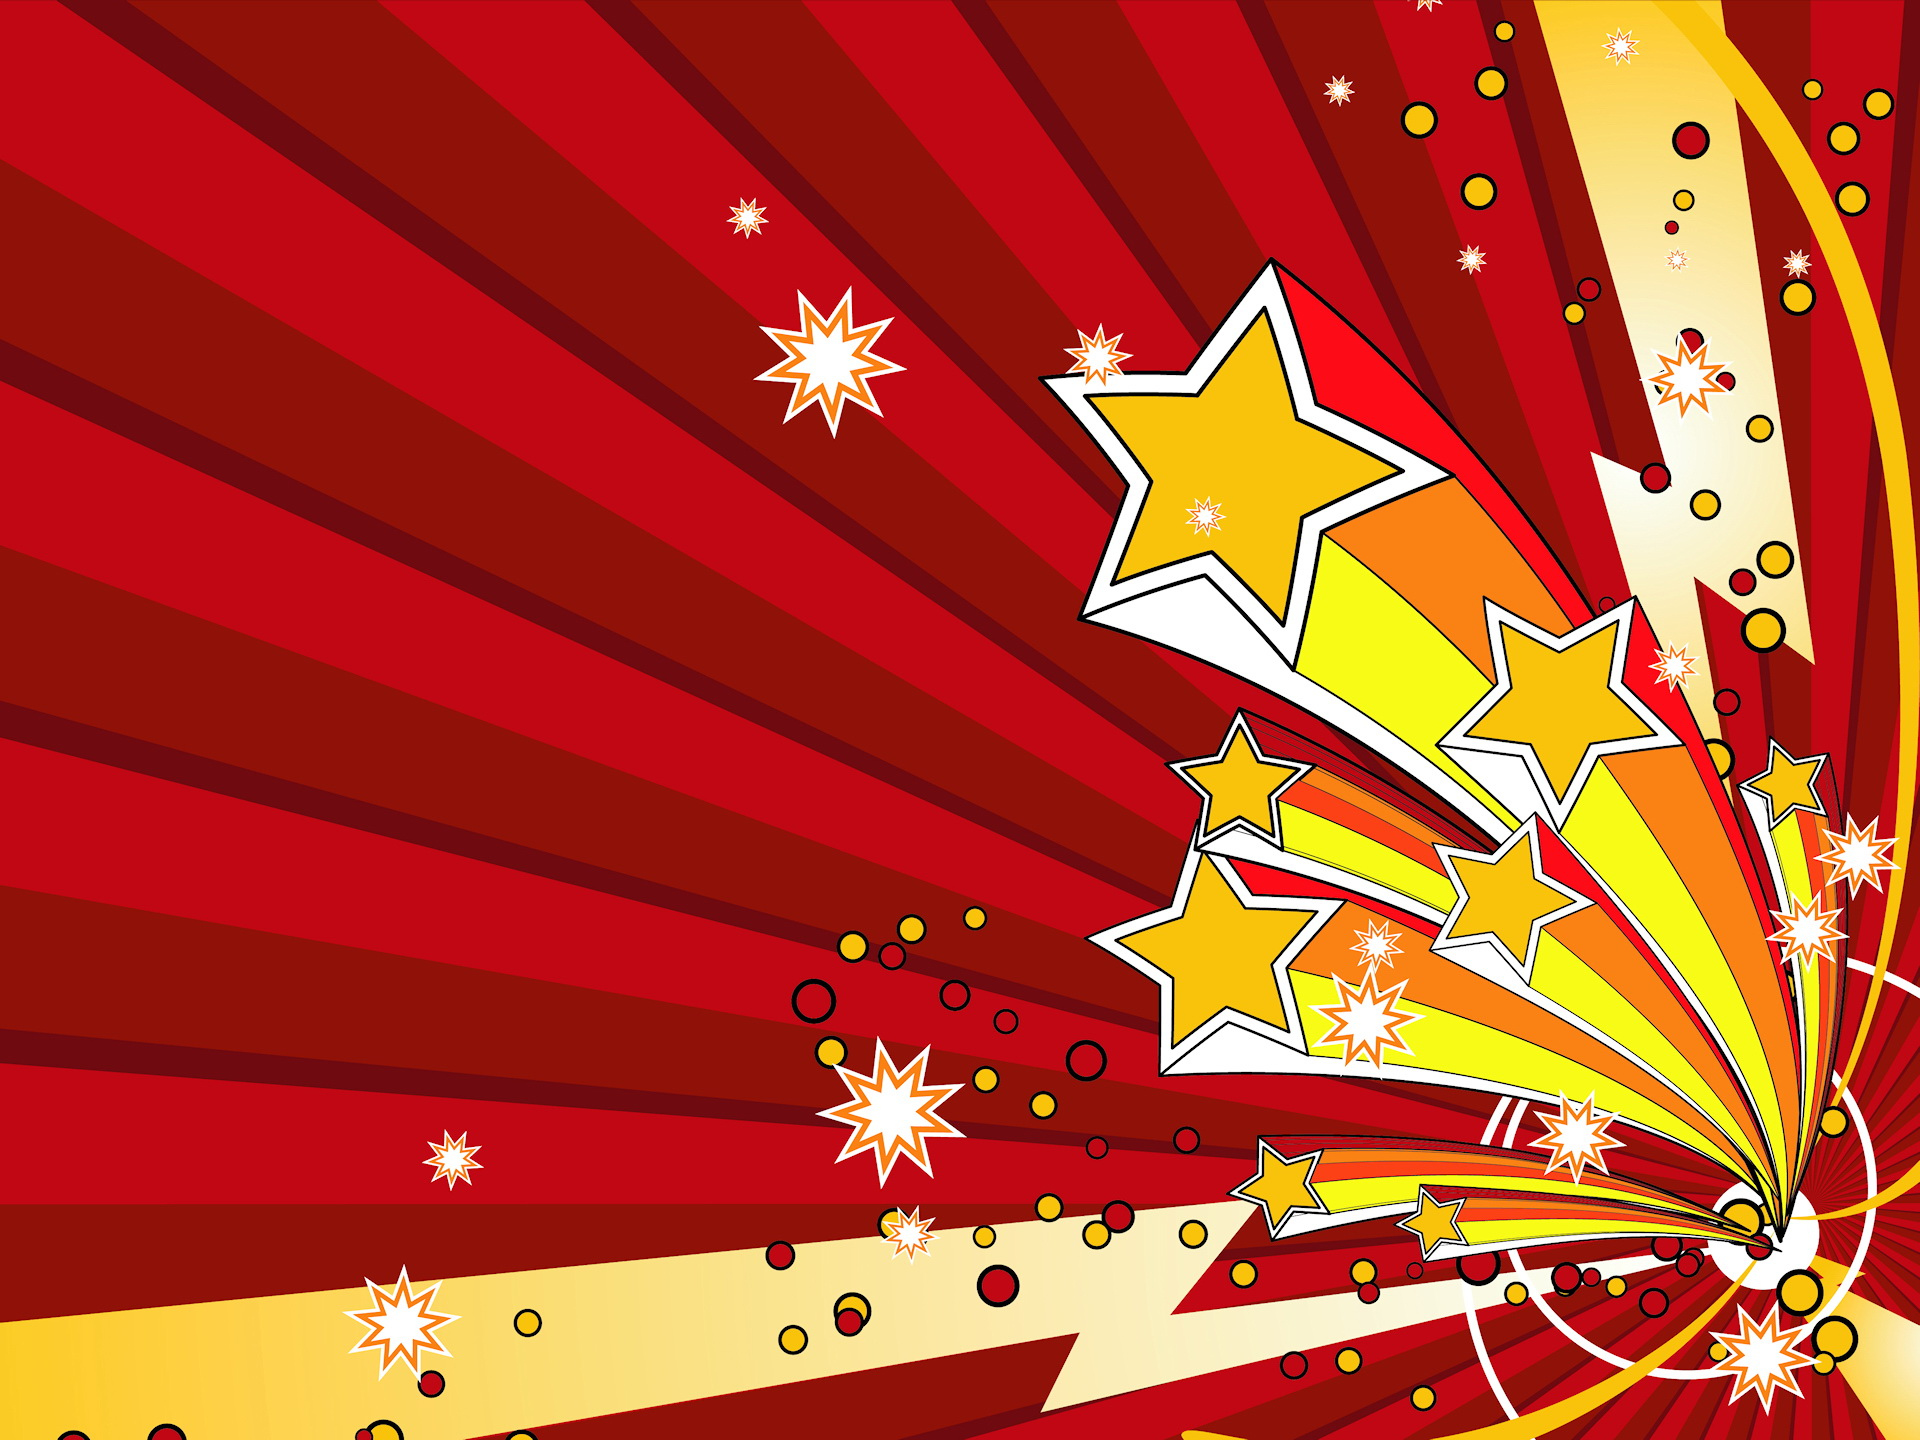 18 Star Vectors Wallpapers Images